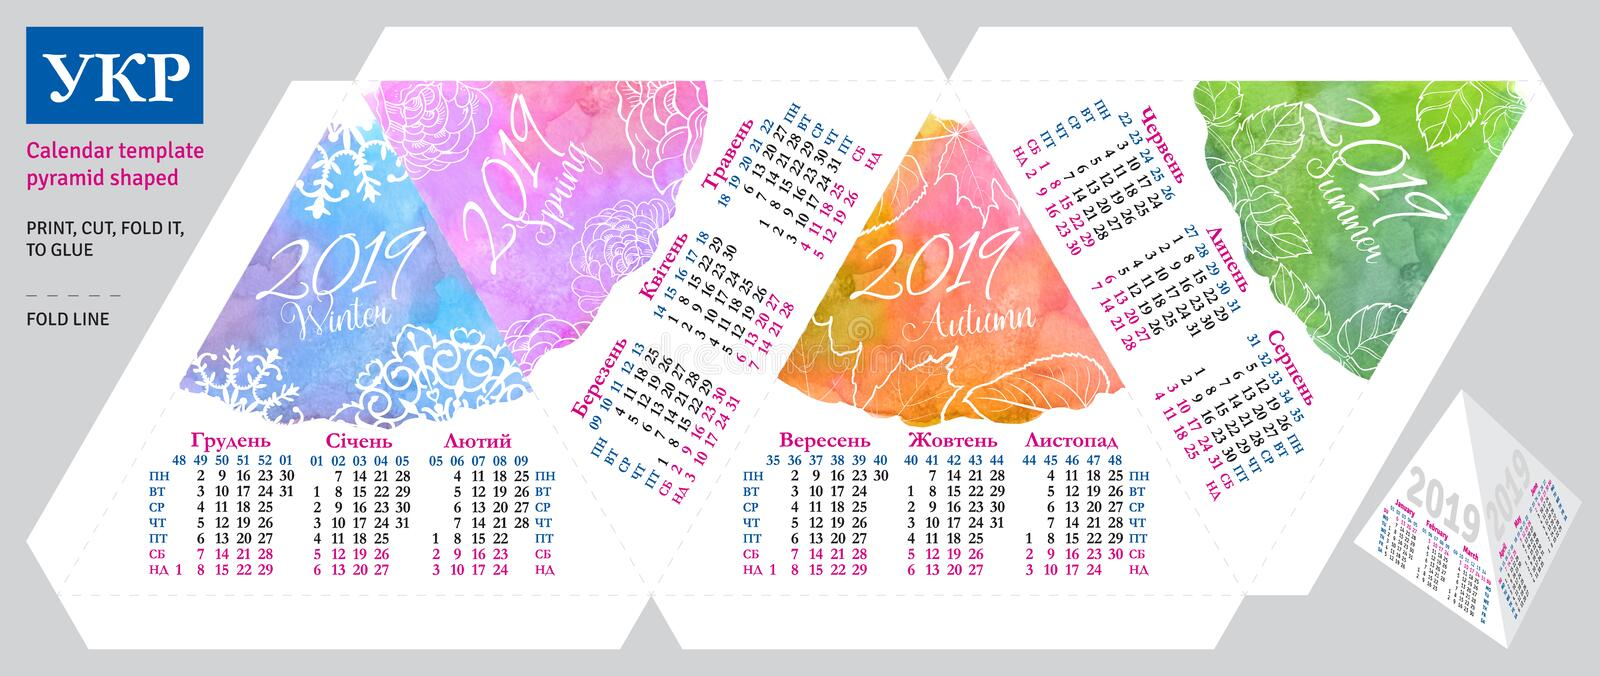 Template ukrainian calendar 2019 by seasons pyramid shaped stock illustration